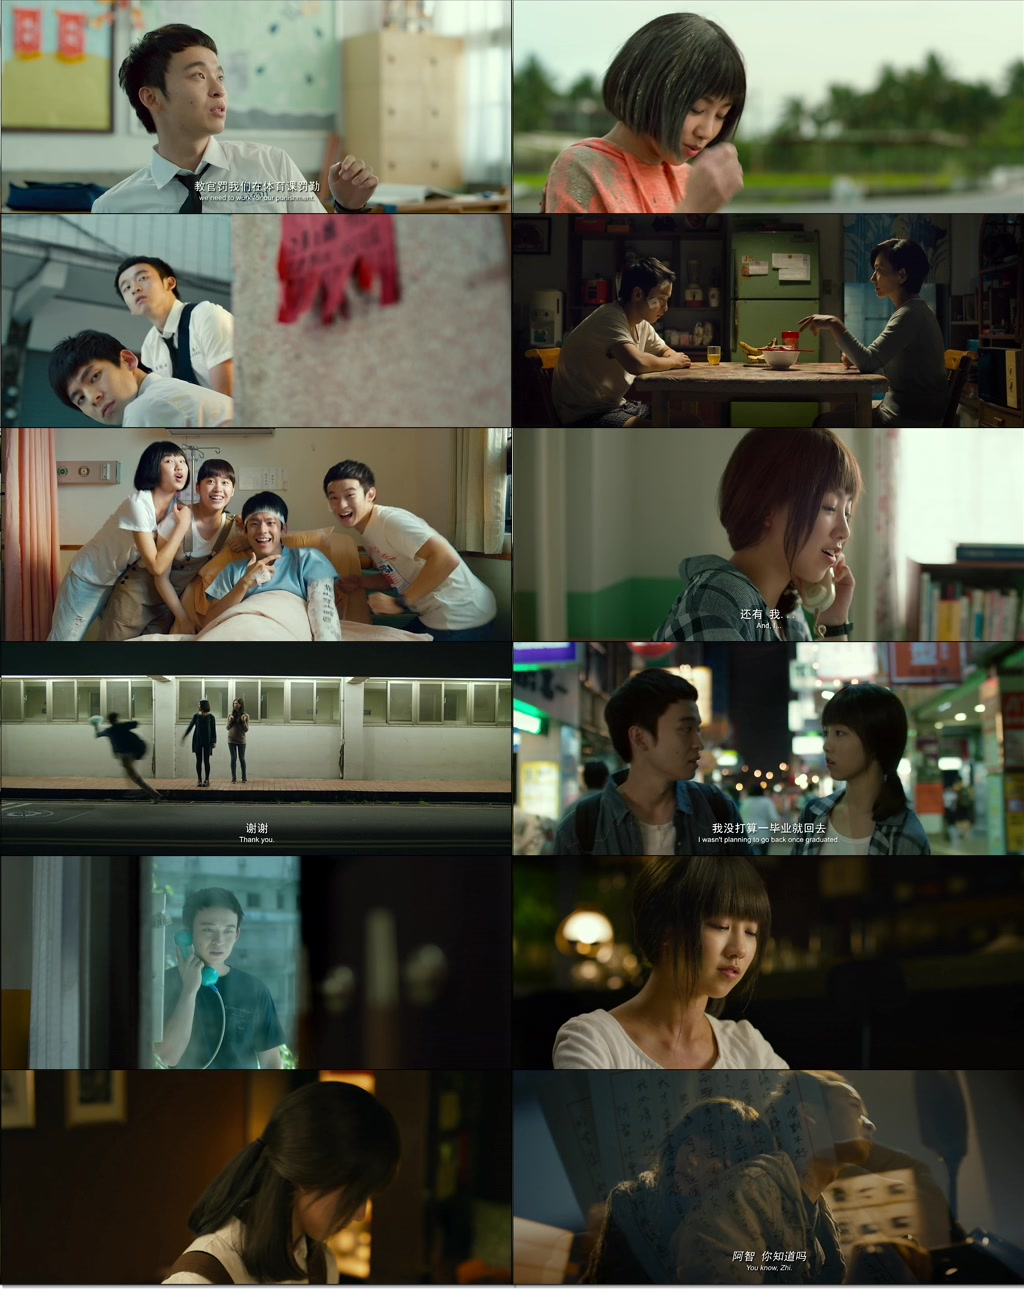 At Cafe 6.2016.2160p.HDRip.x264-FEWAT